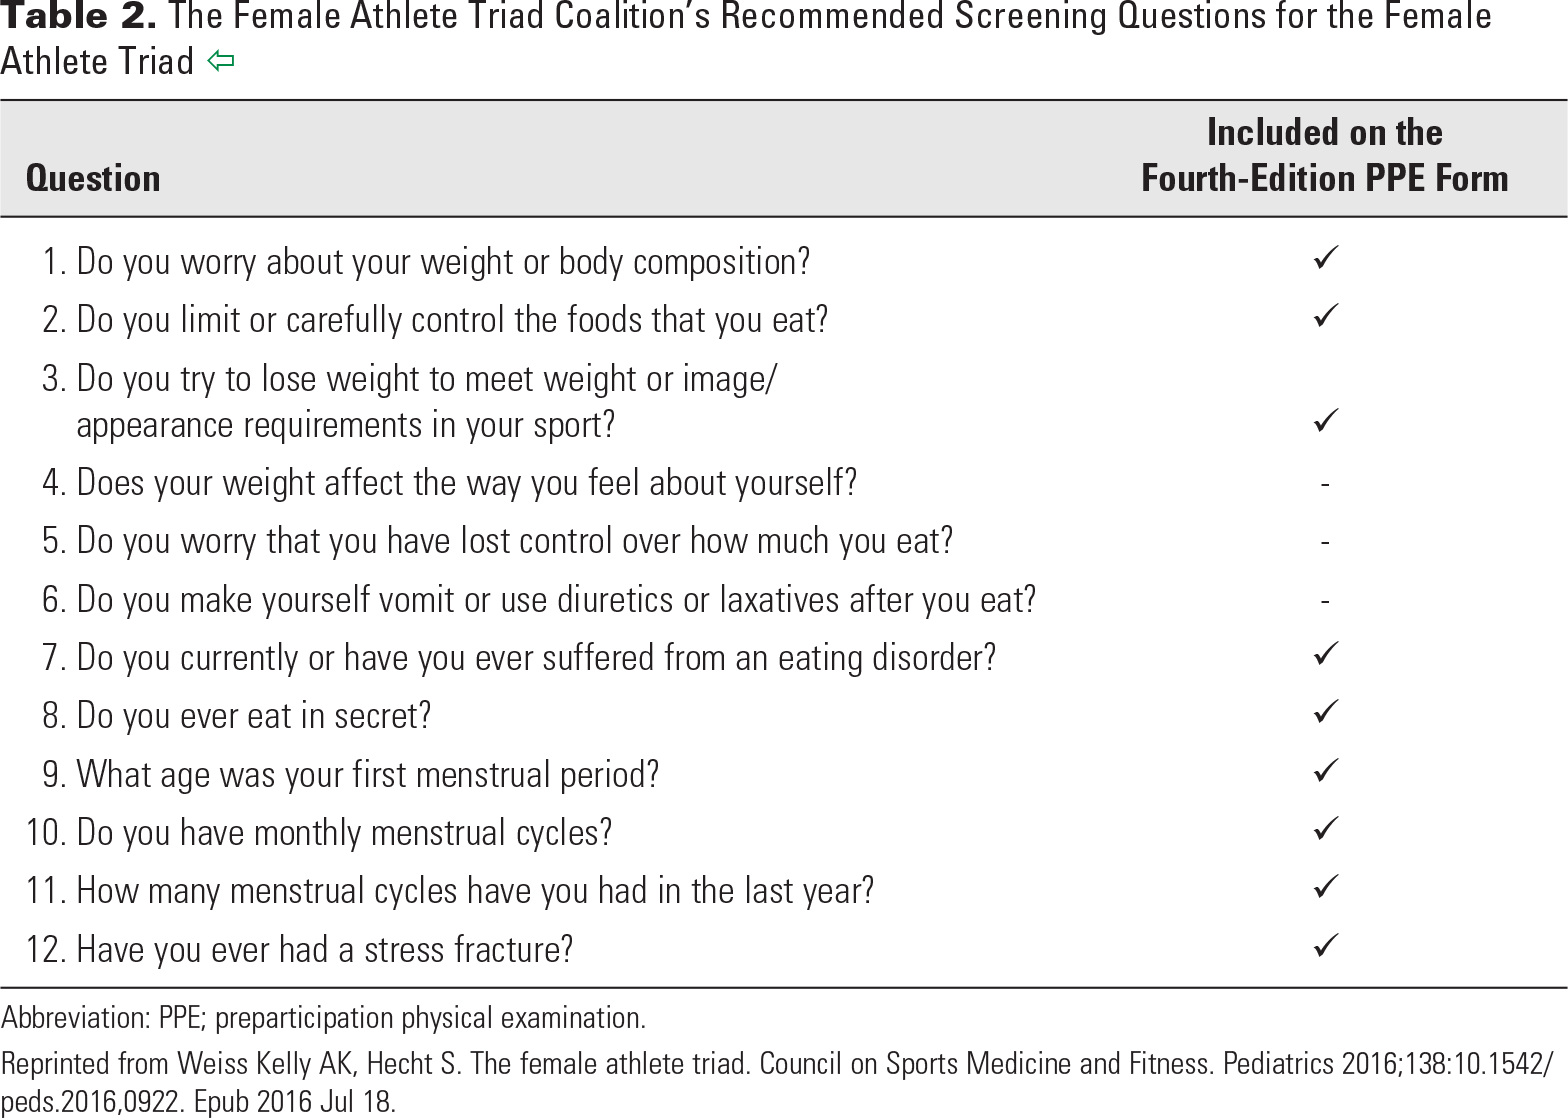 Table 2. The Female Athlete Triad Coalition's Recommended Screening Questions for the Female Athlete Triad